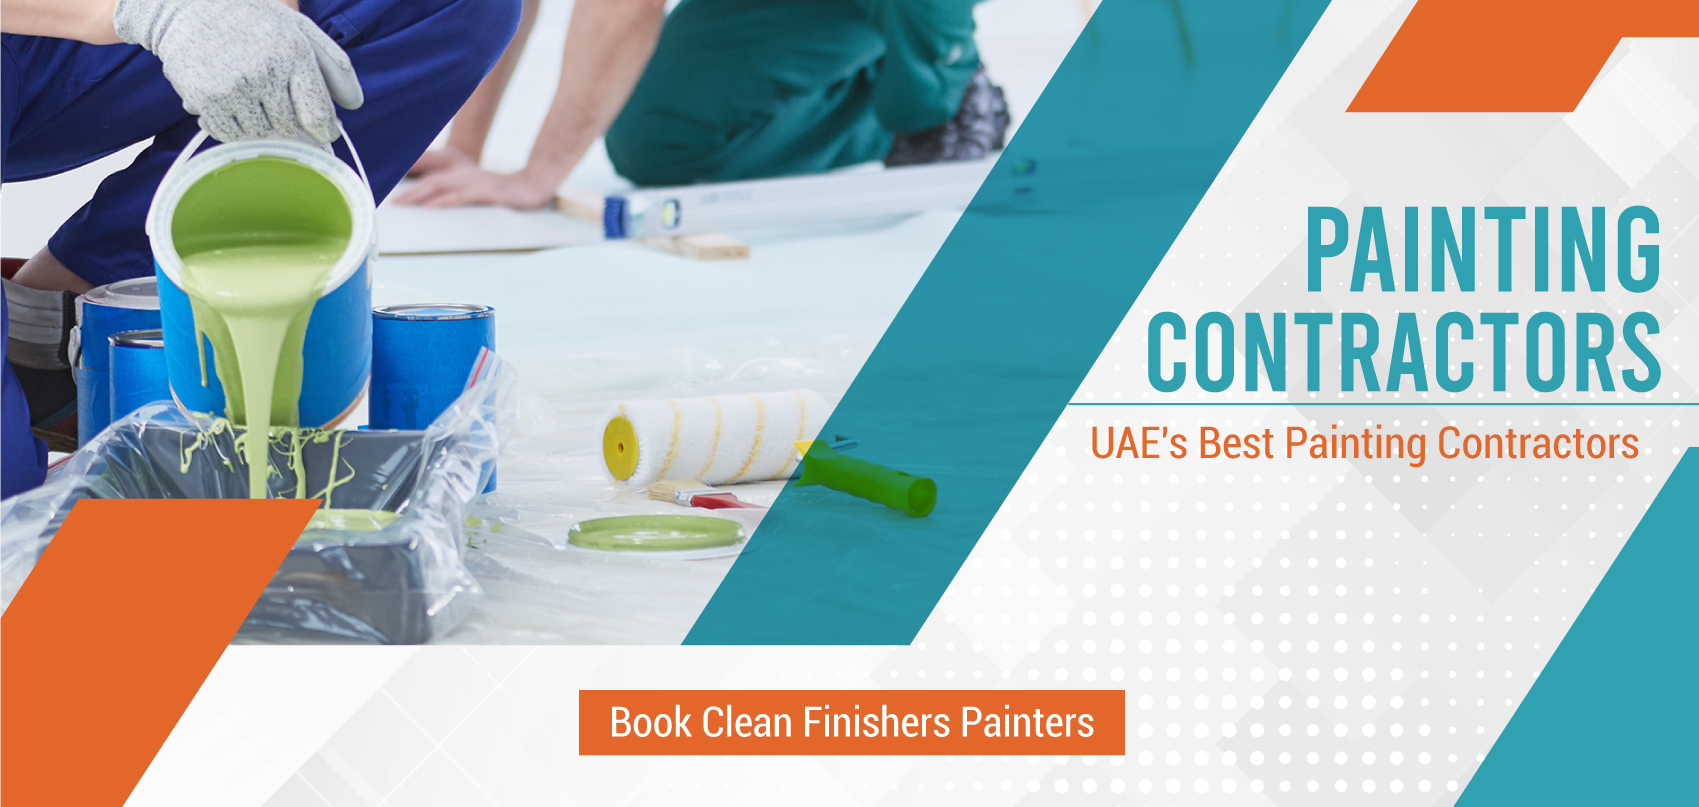 paint-contractors-in-uae-clean-finishers-com